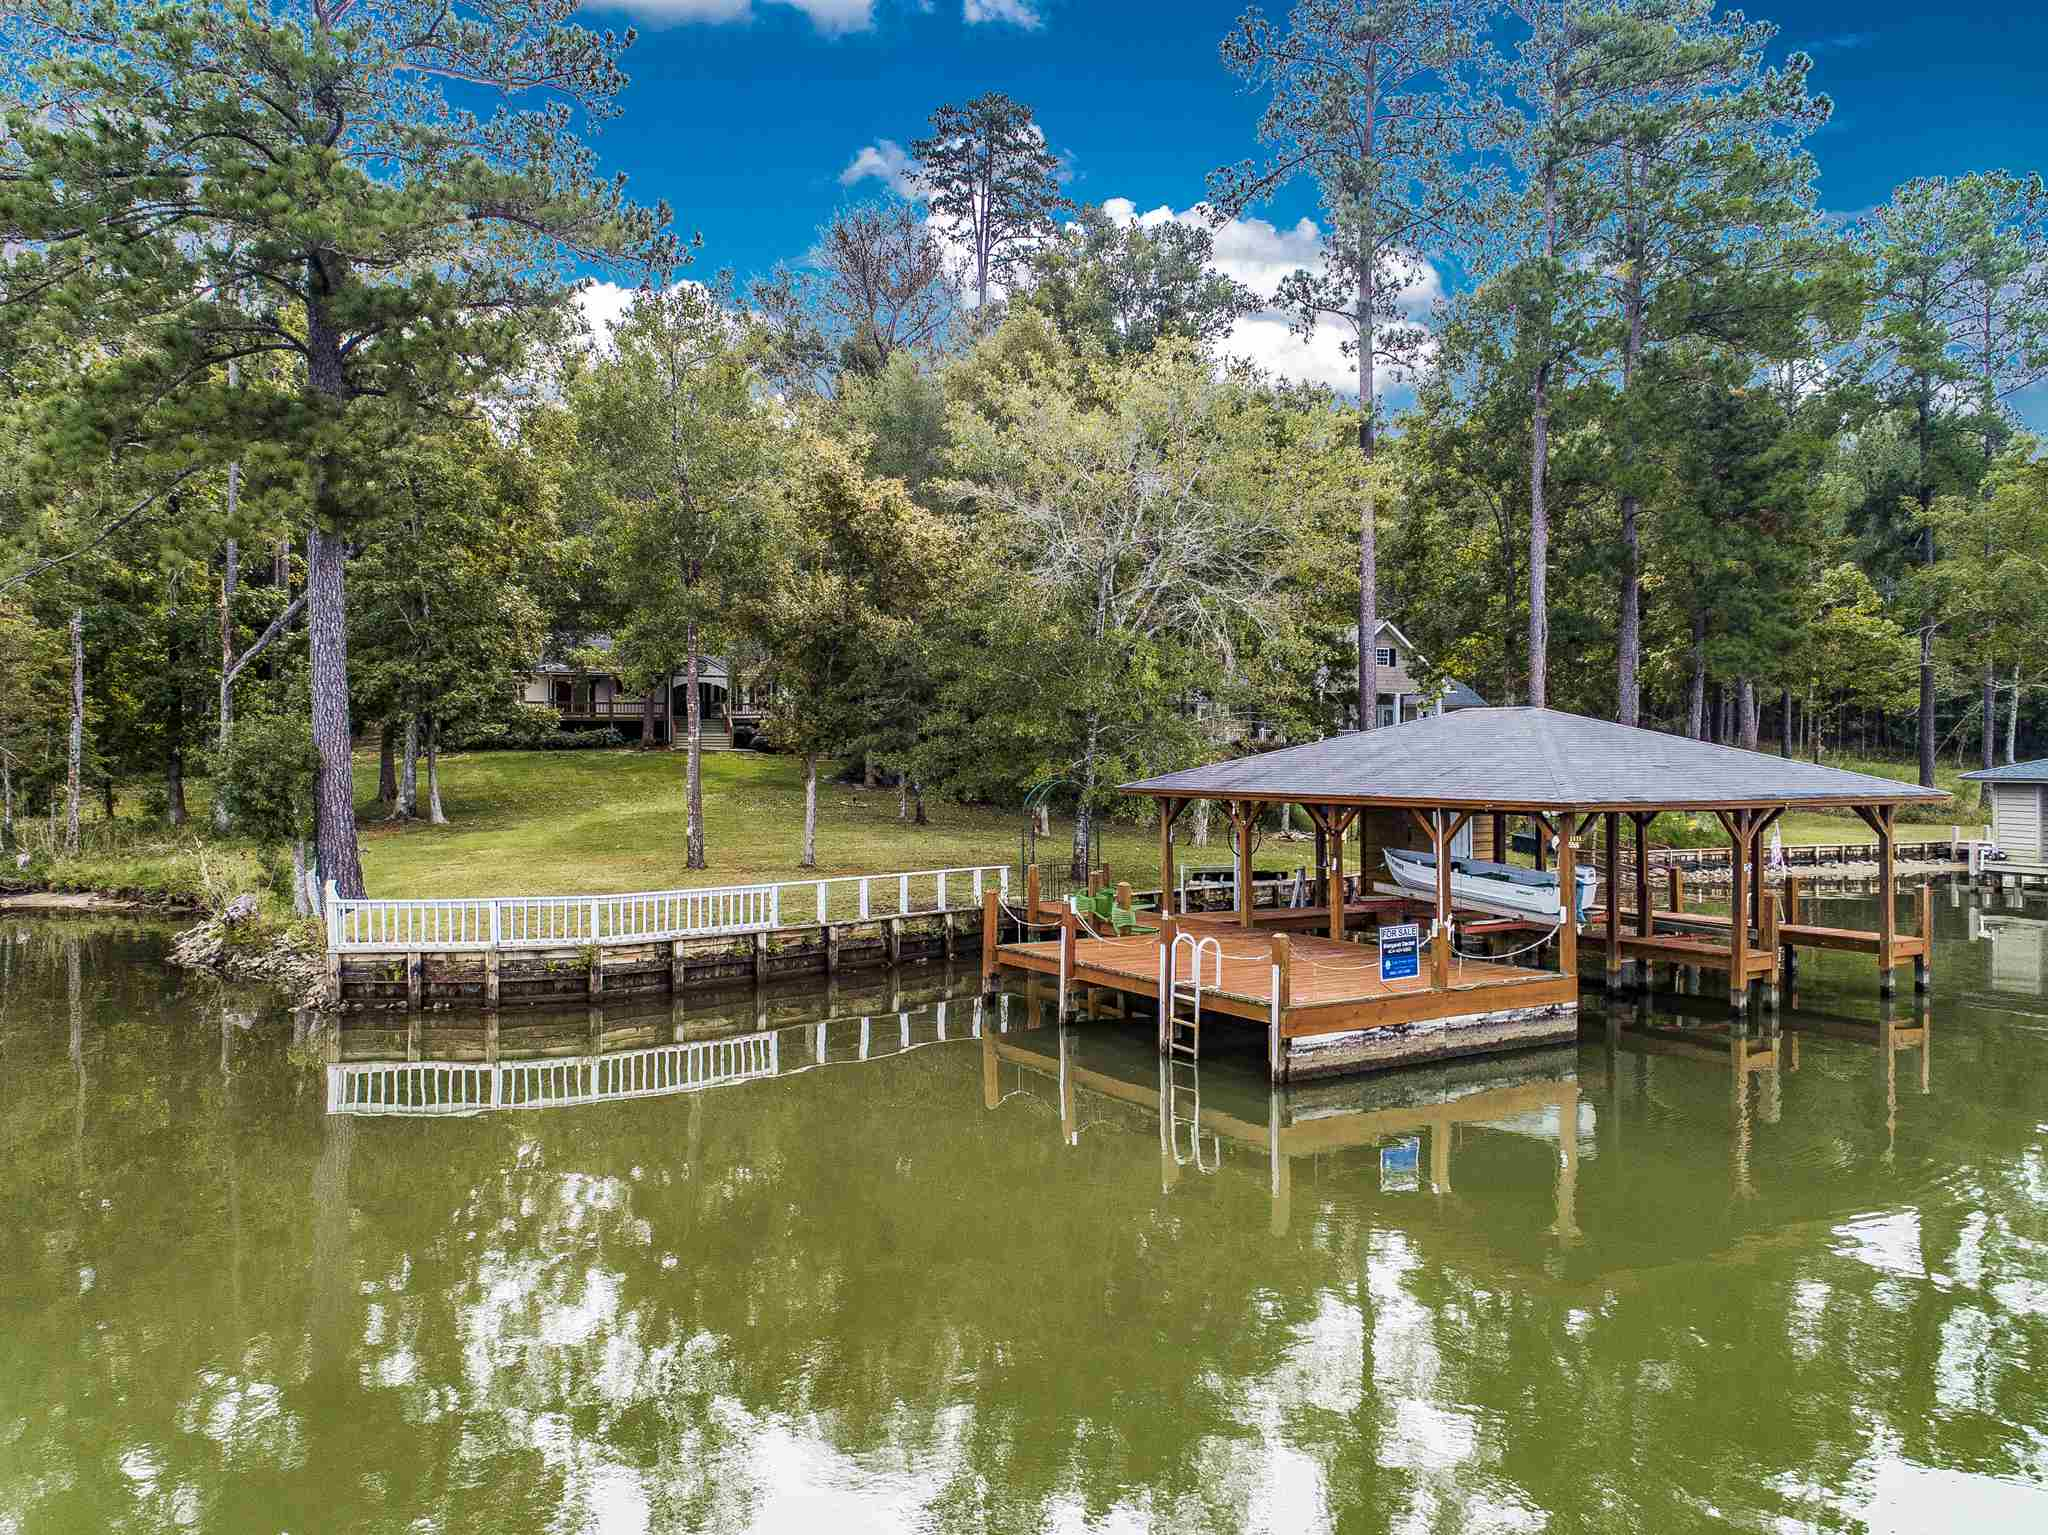 18 SYCAMORE LANE, Lake Sinclair, Georgia